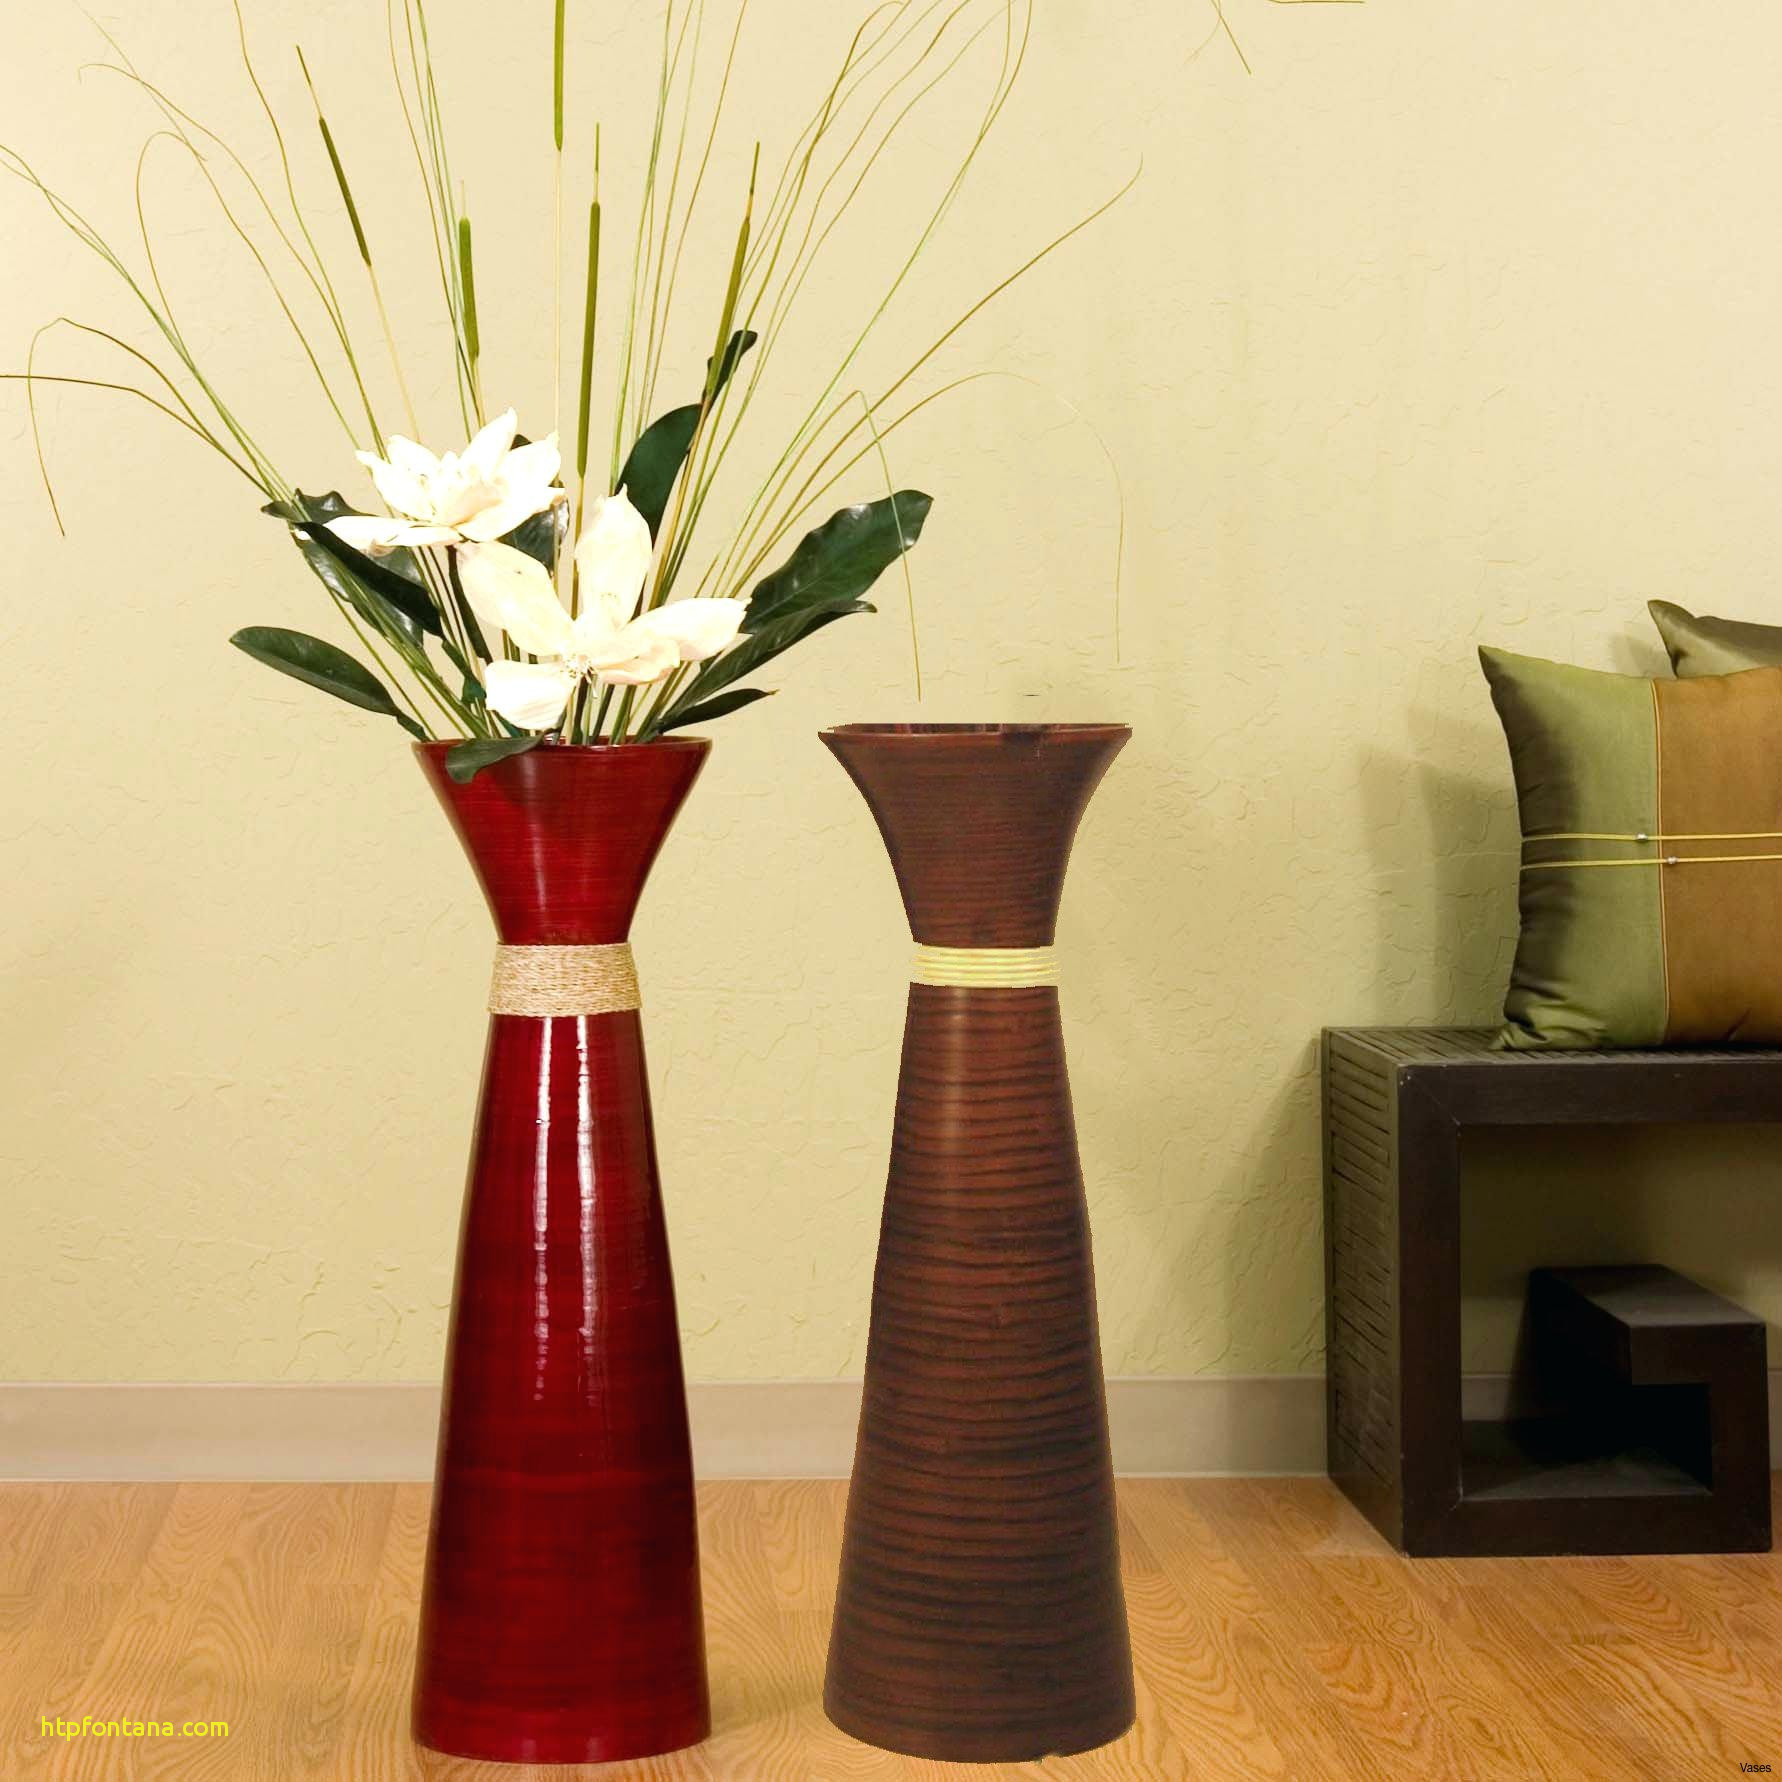 large tall glass vase of living room vase inspirational vase decorations for living room best within living room vase lovely living room decor vases best decorative colorful red sticks in a of